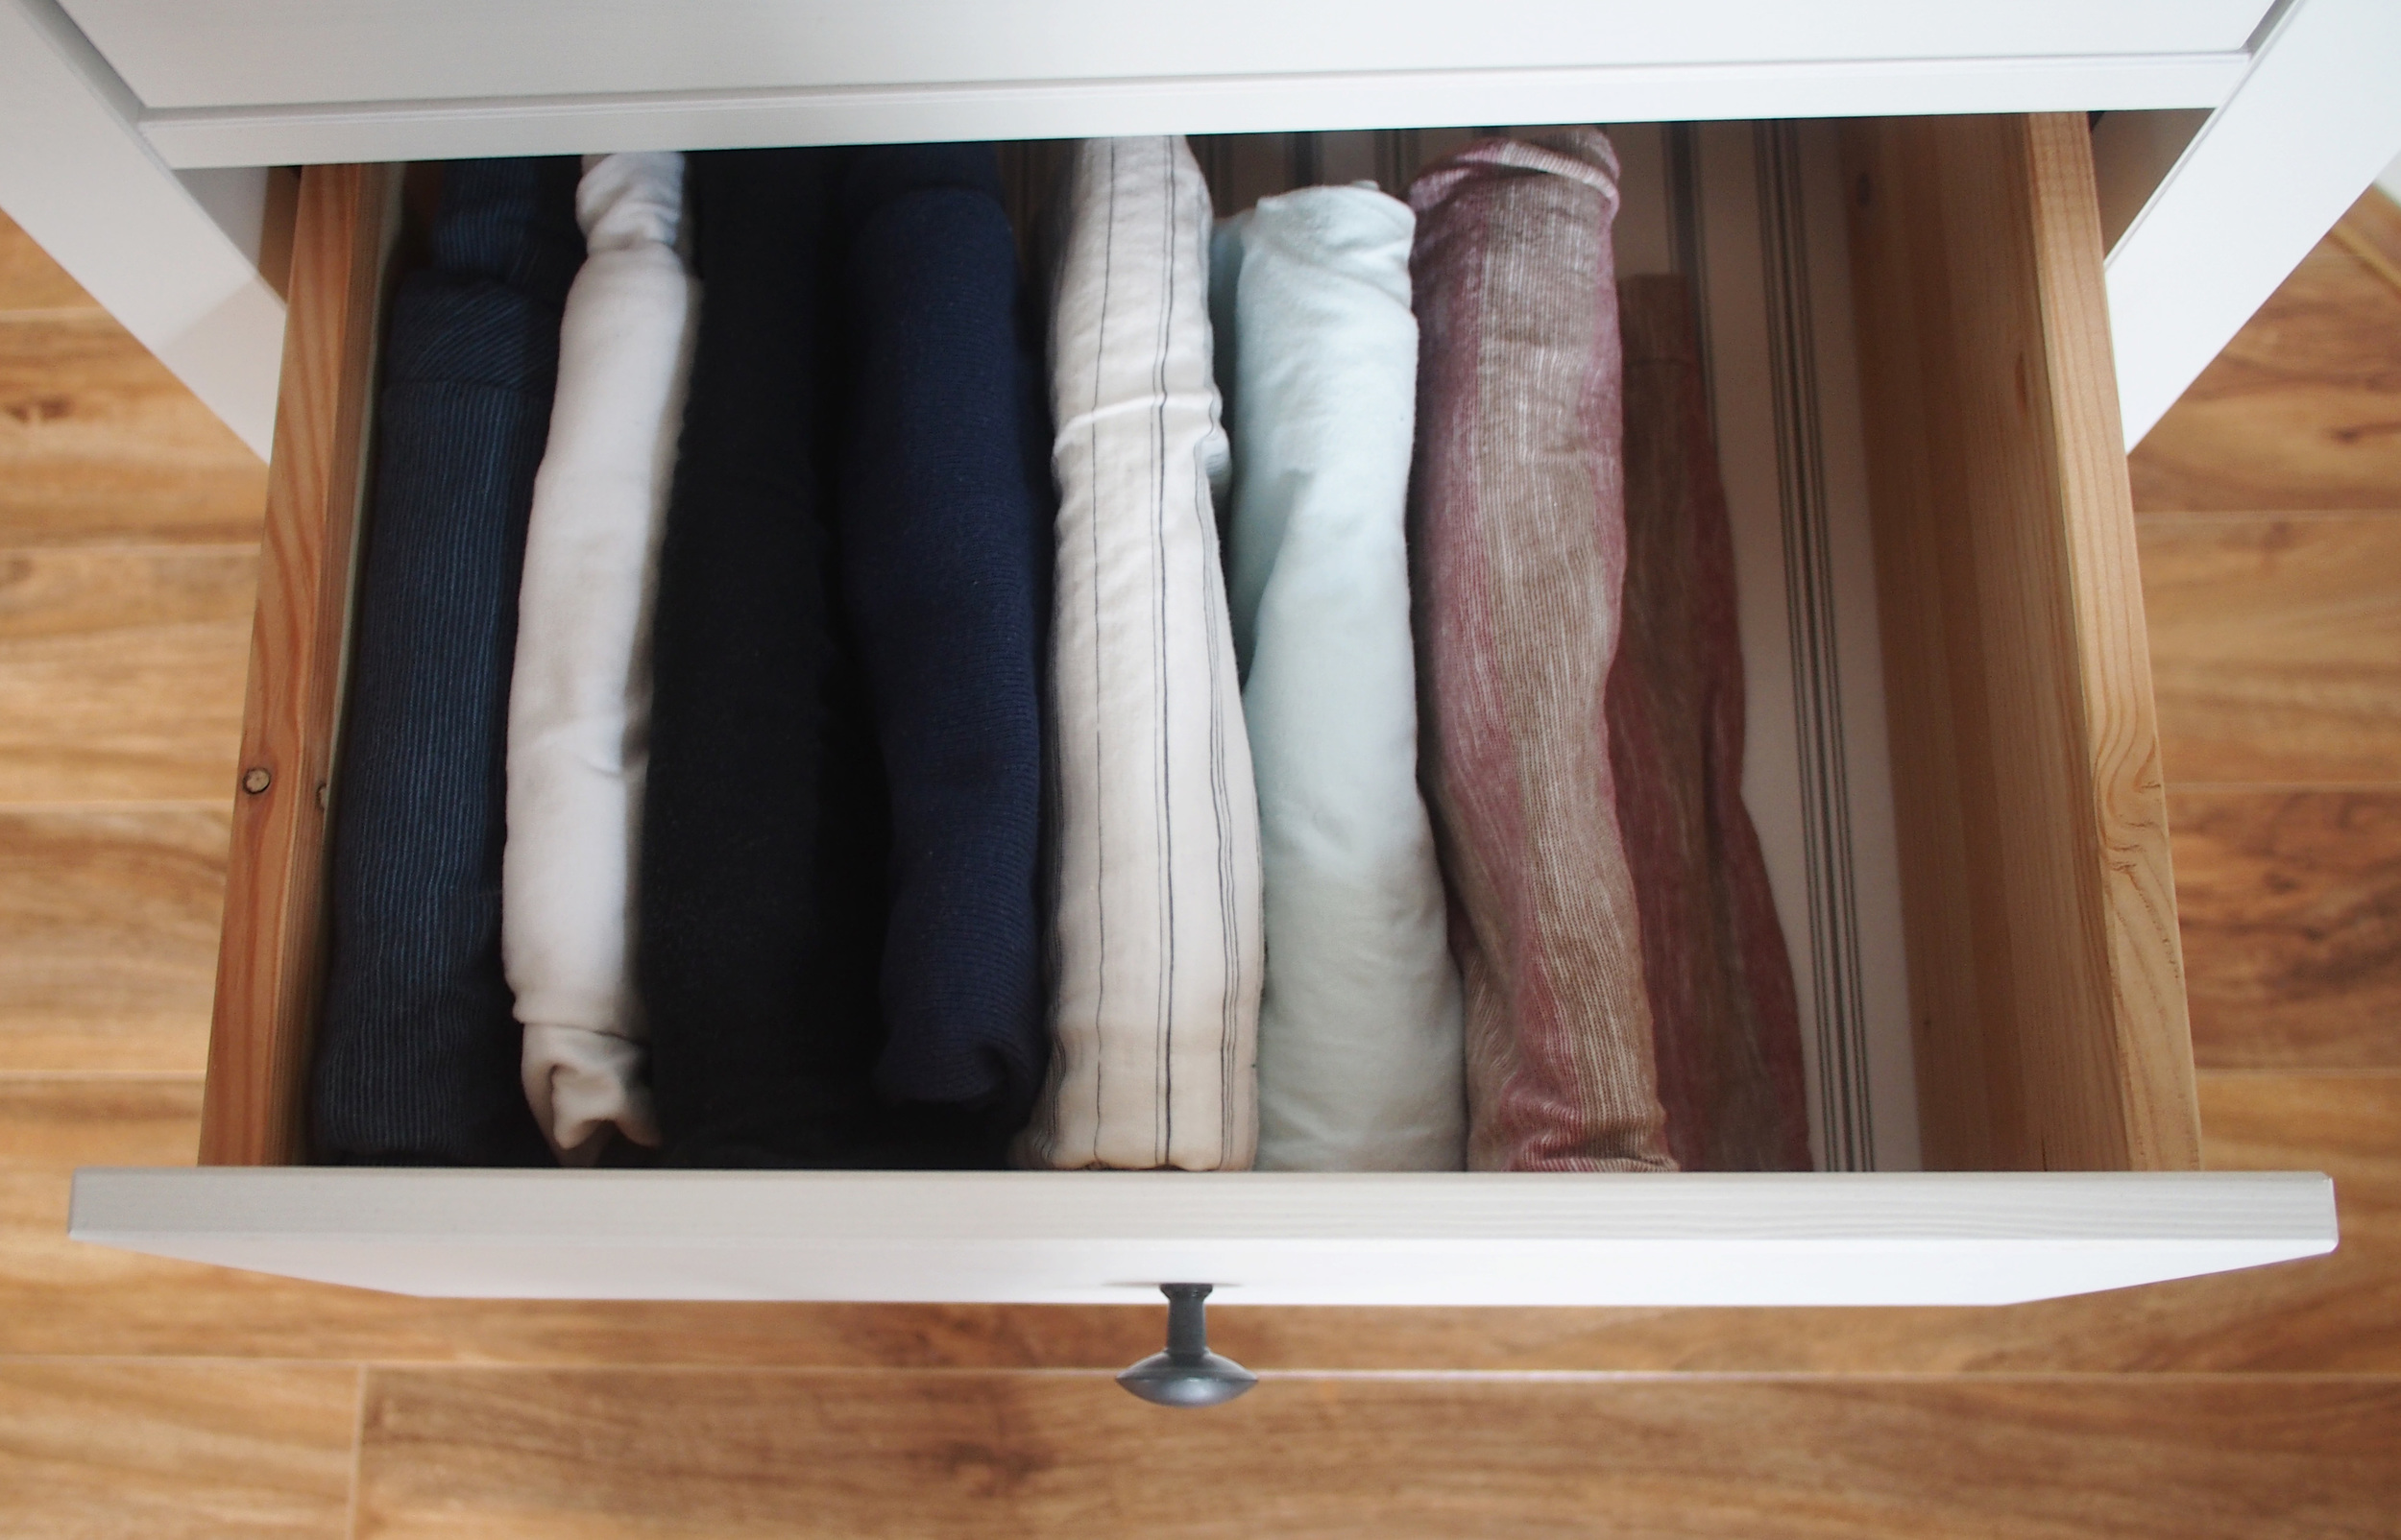 storage solutions - filing tops horizontally for increased storage in dresser drawers